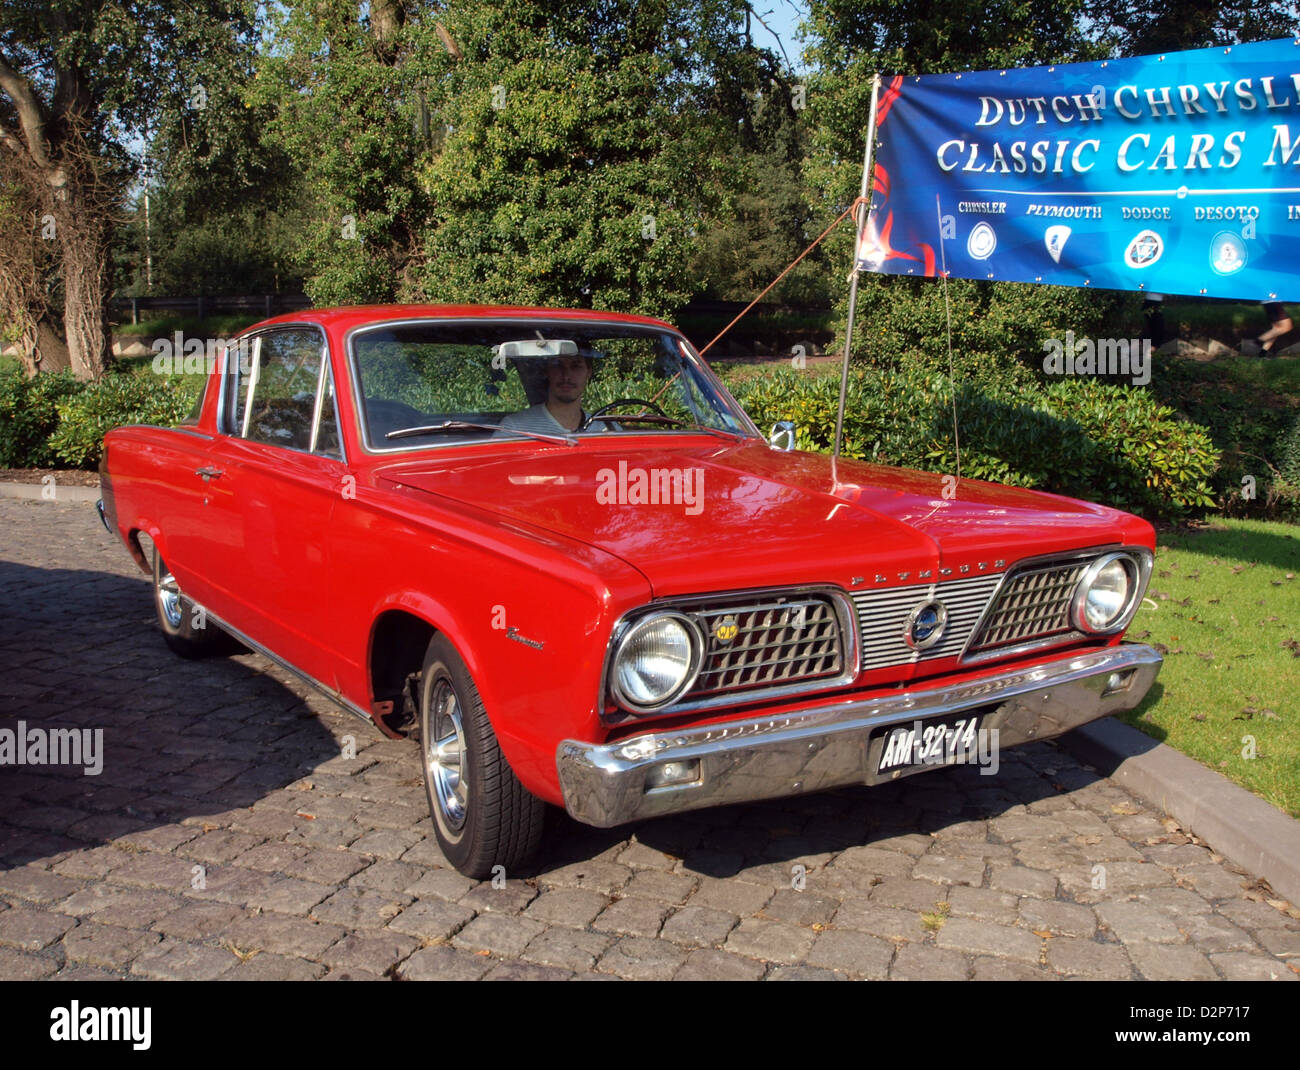 1966 Plymouth Barracuda Banque D'Images